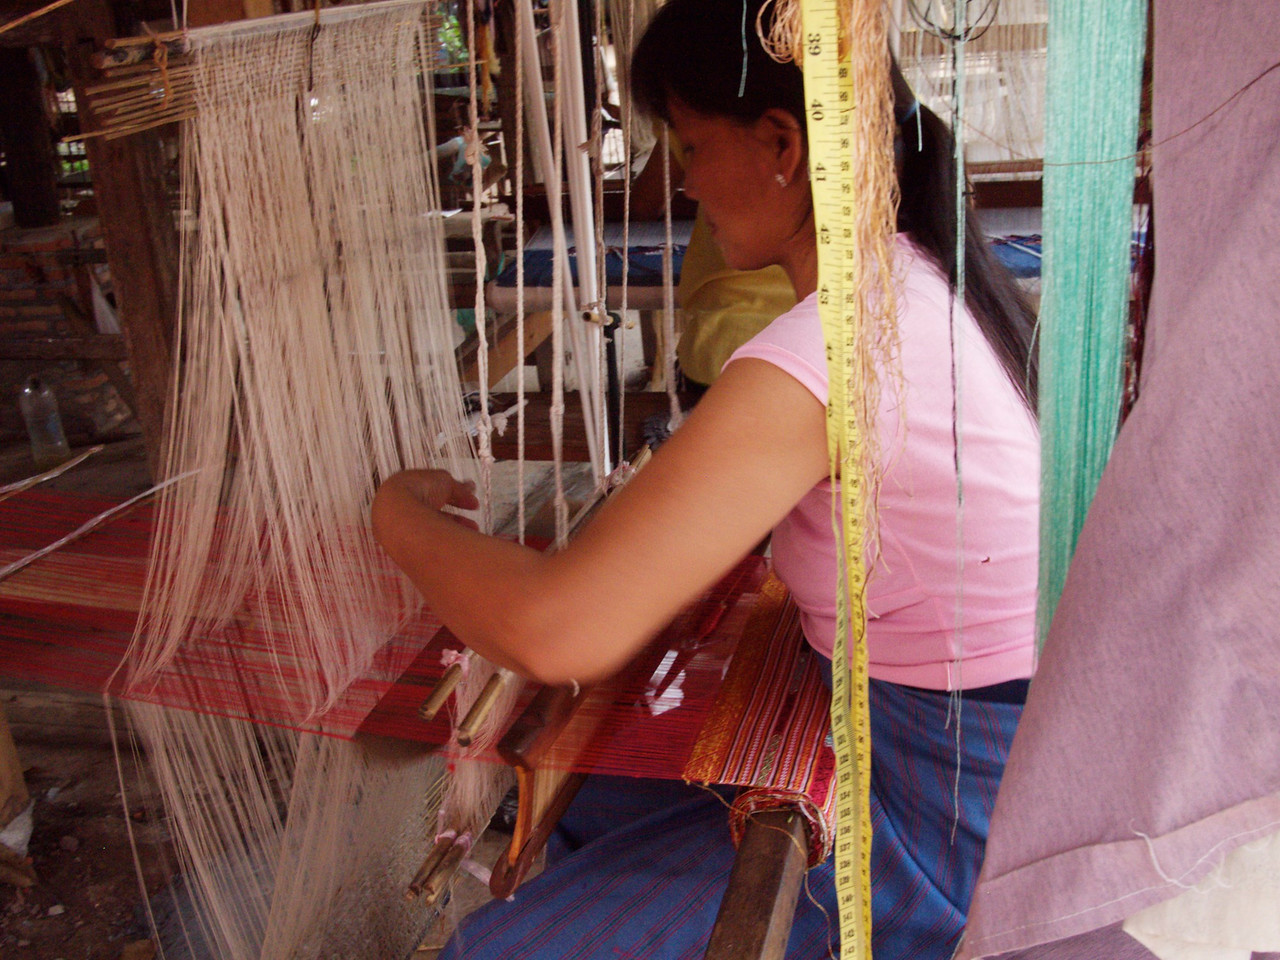 we rode bikes to a village known for weaving. the lao people make beautiful scarves and tapestries out of hand-died silks